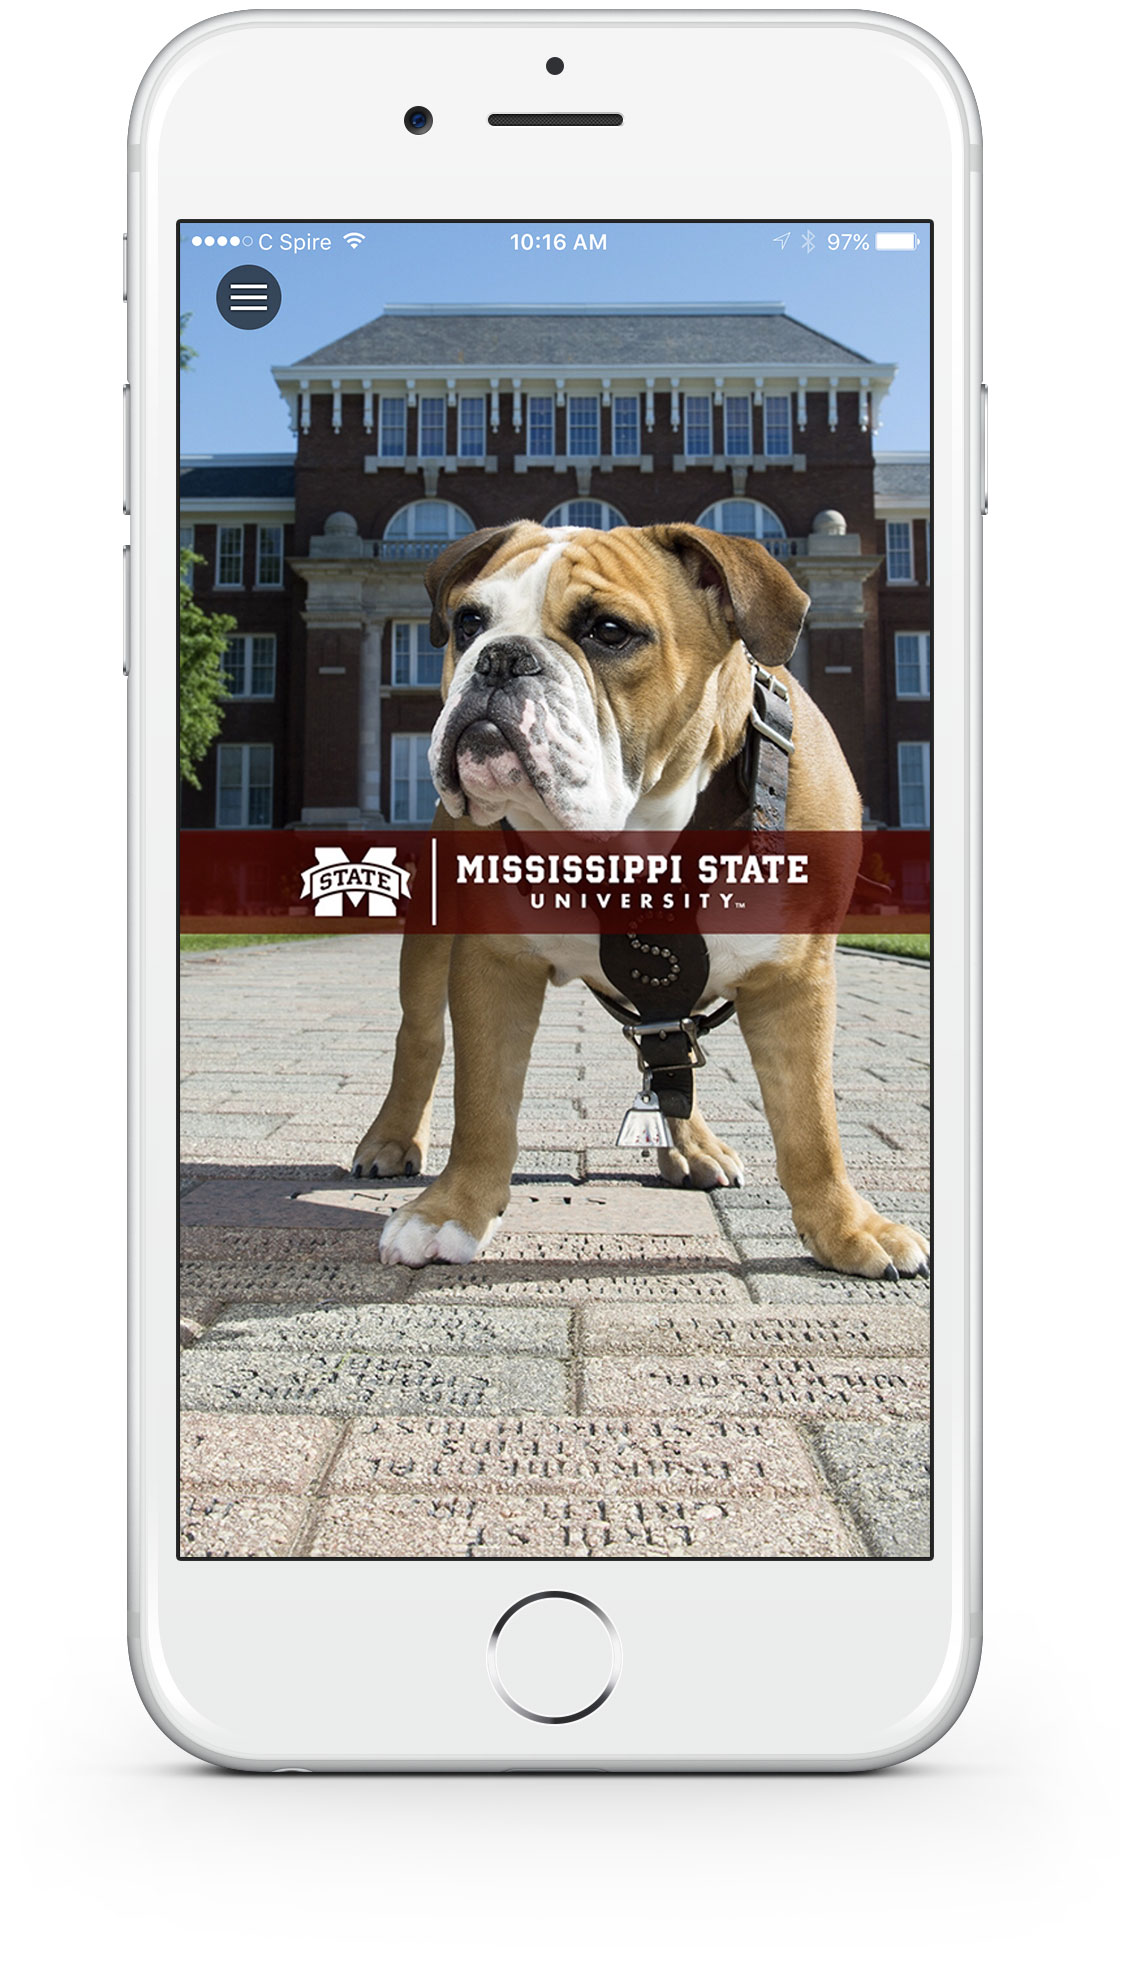 Home screen for the myState mobile app. Pictured is Bully on the Drill Field with app menu link in top left corner.